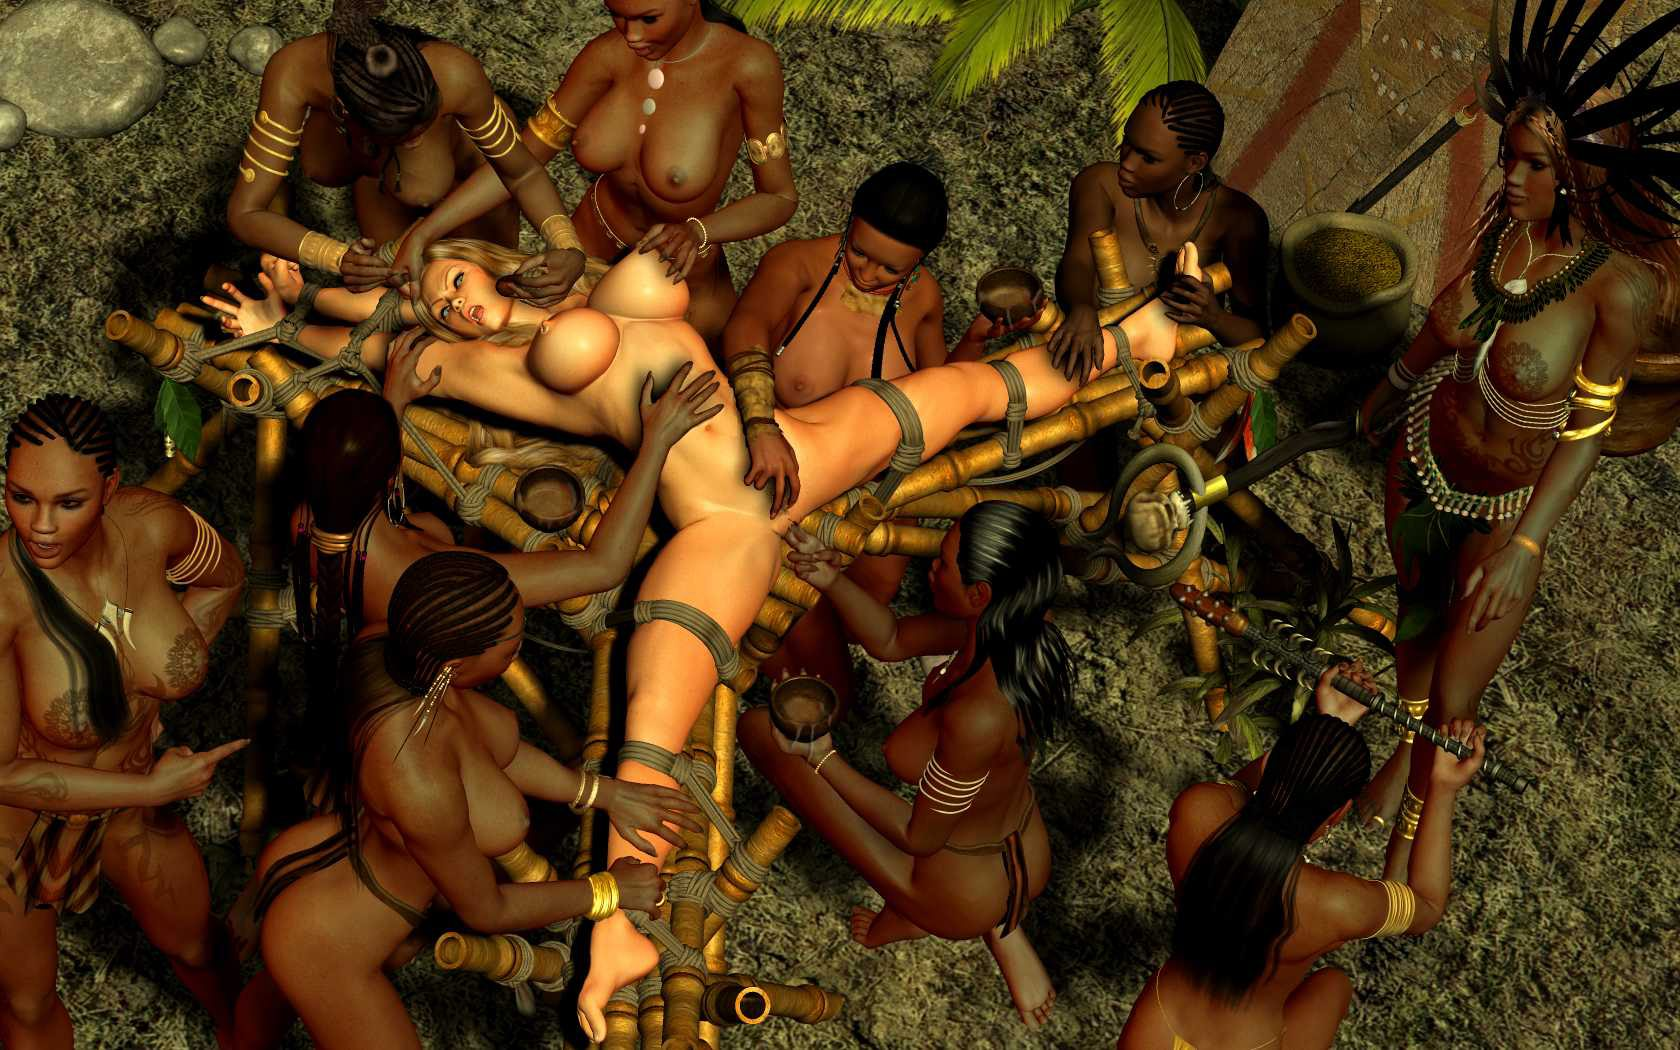 Tribe sex african The Namibian